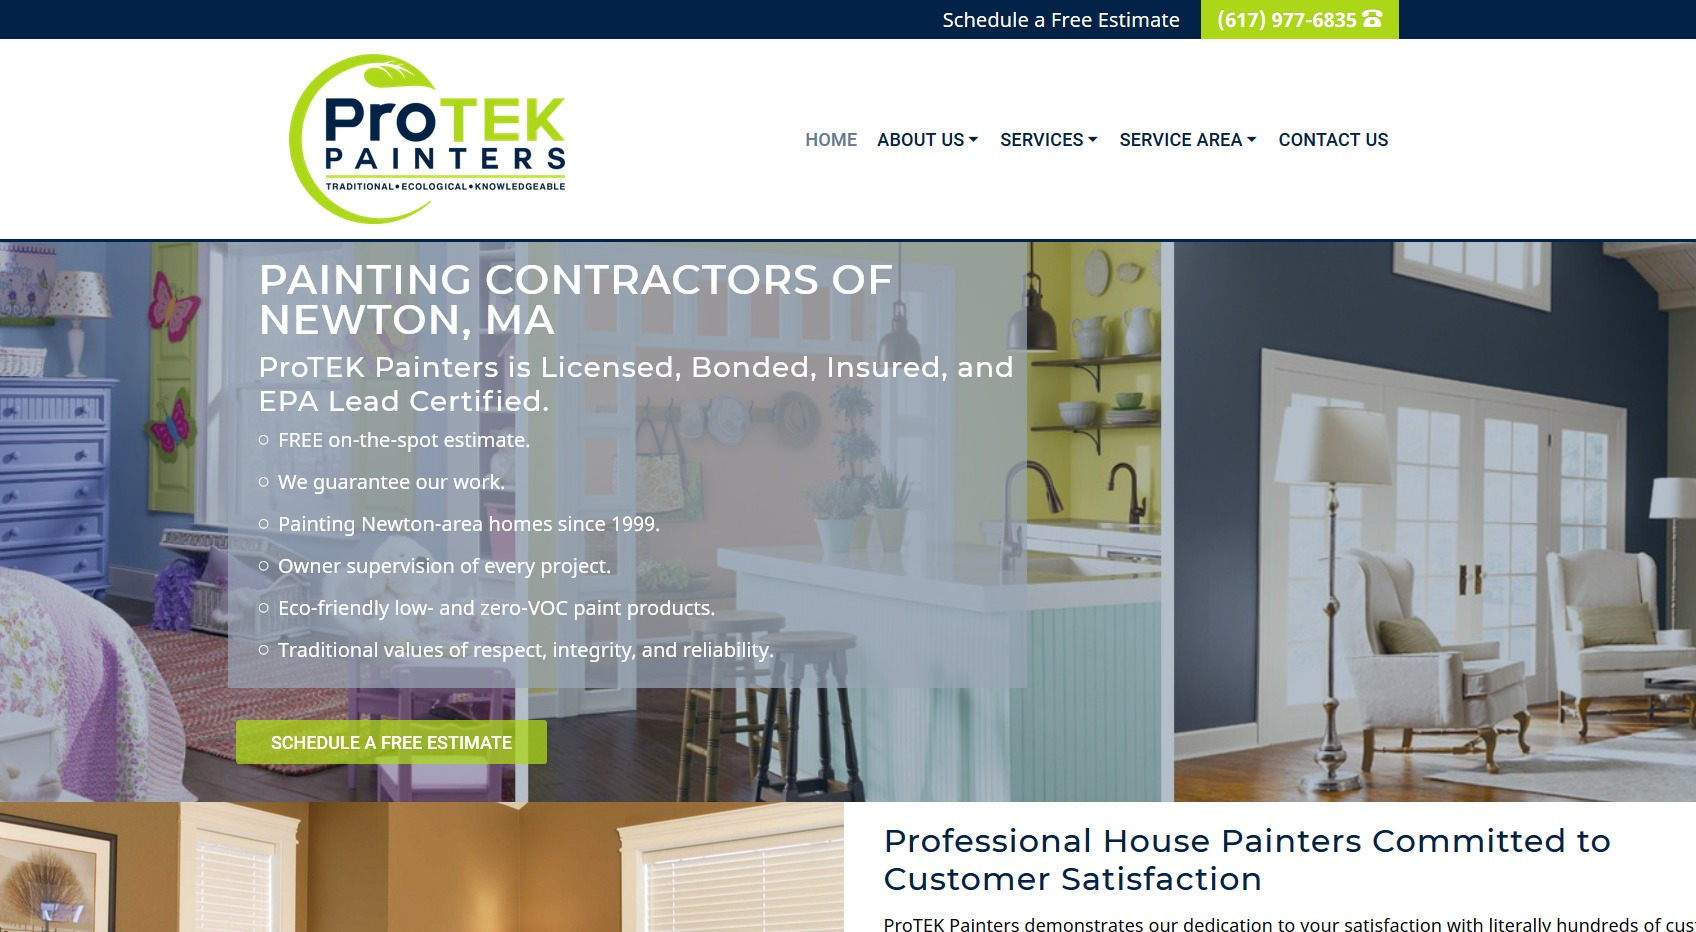 island ny residential estimate long commercial suffolk house painting interior